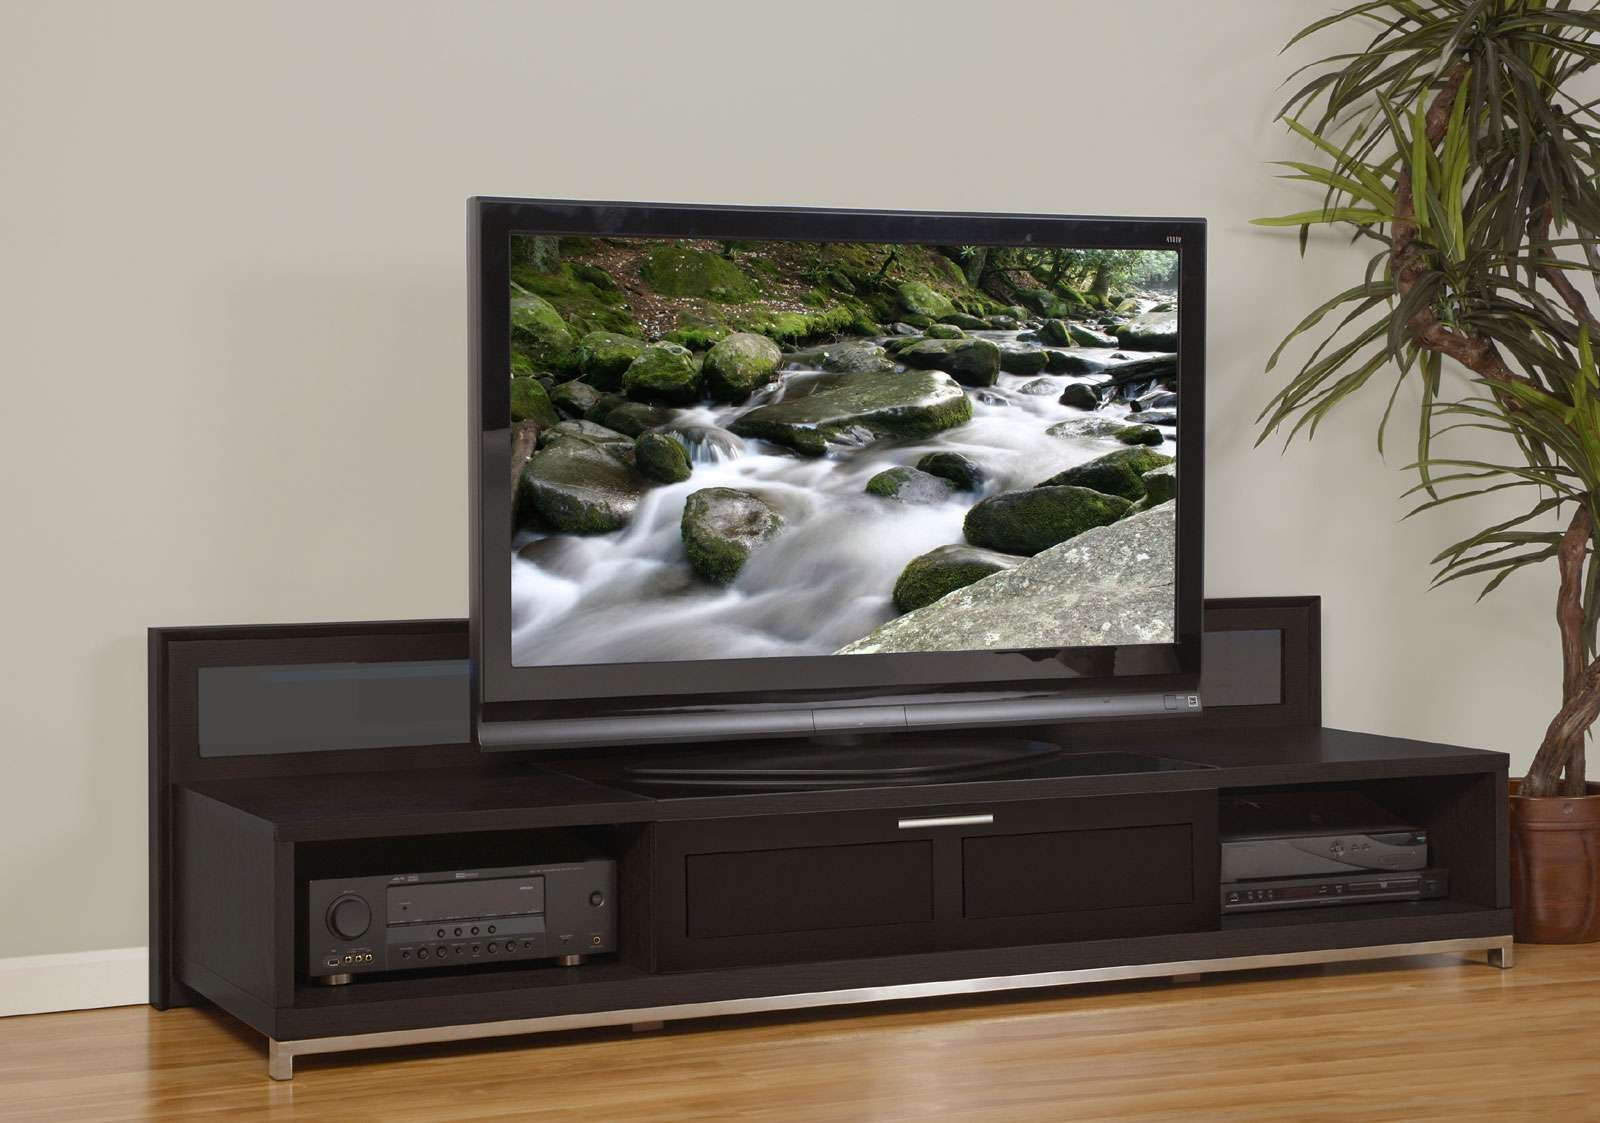 Tv Stands On A Budget Inch Flat Screens Collection Ideas Corner Pertaining To Corner 60 Inch Tv Stands (View 15 of 15)